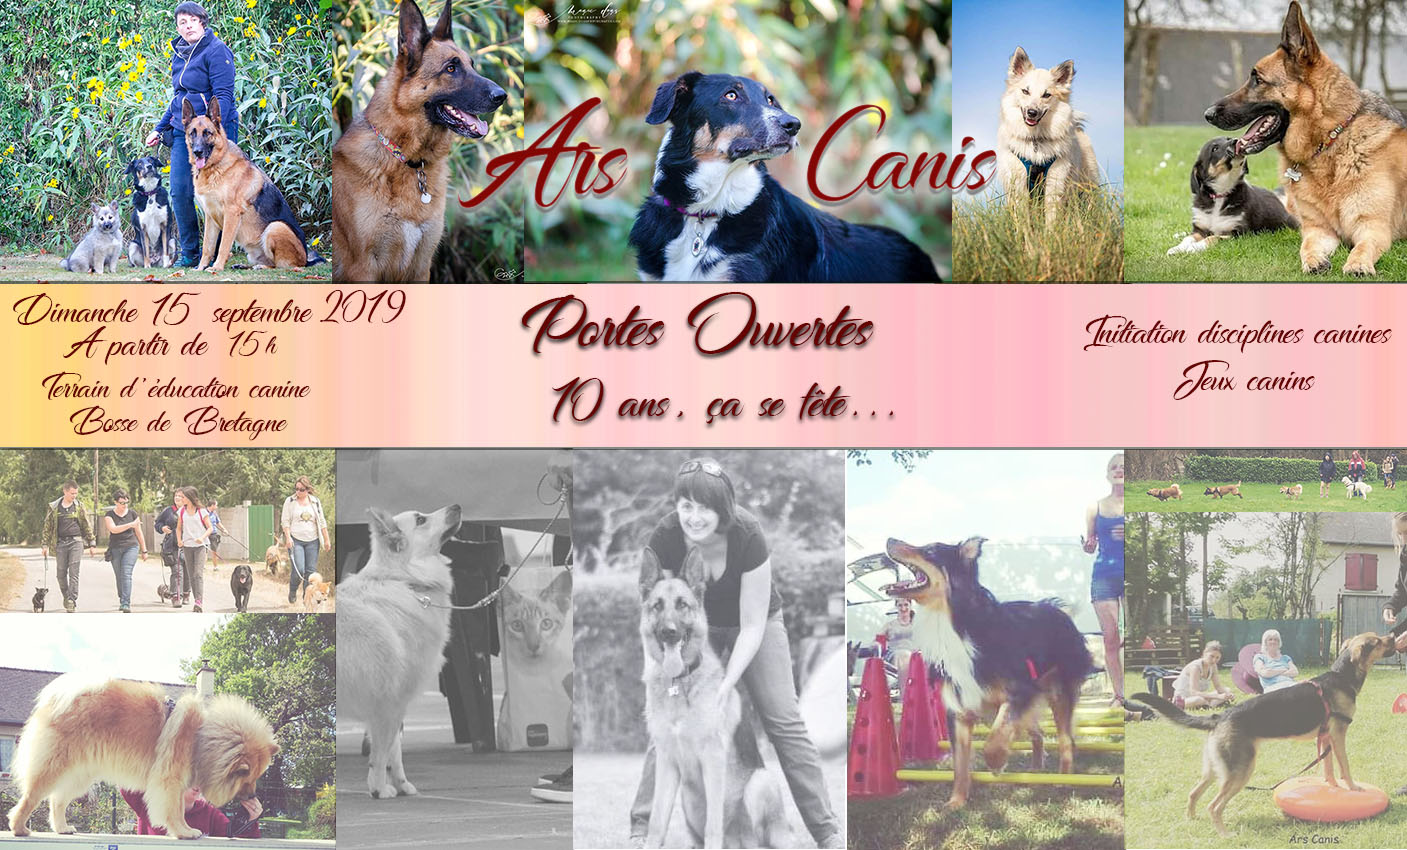 Portes ouvertes Ars Canis 2019